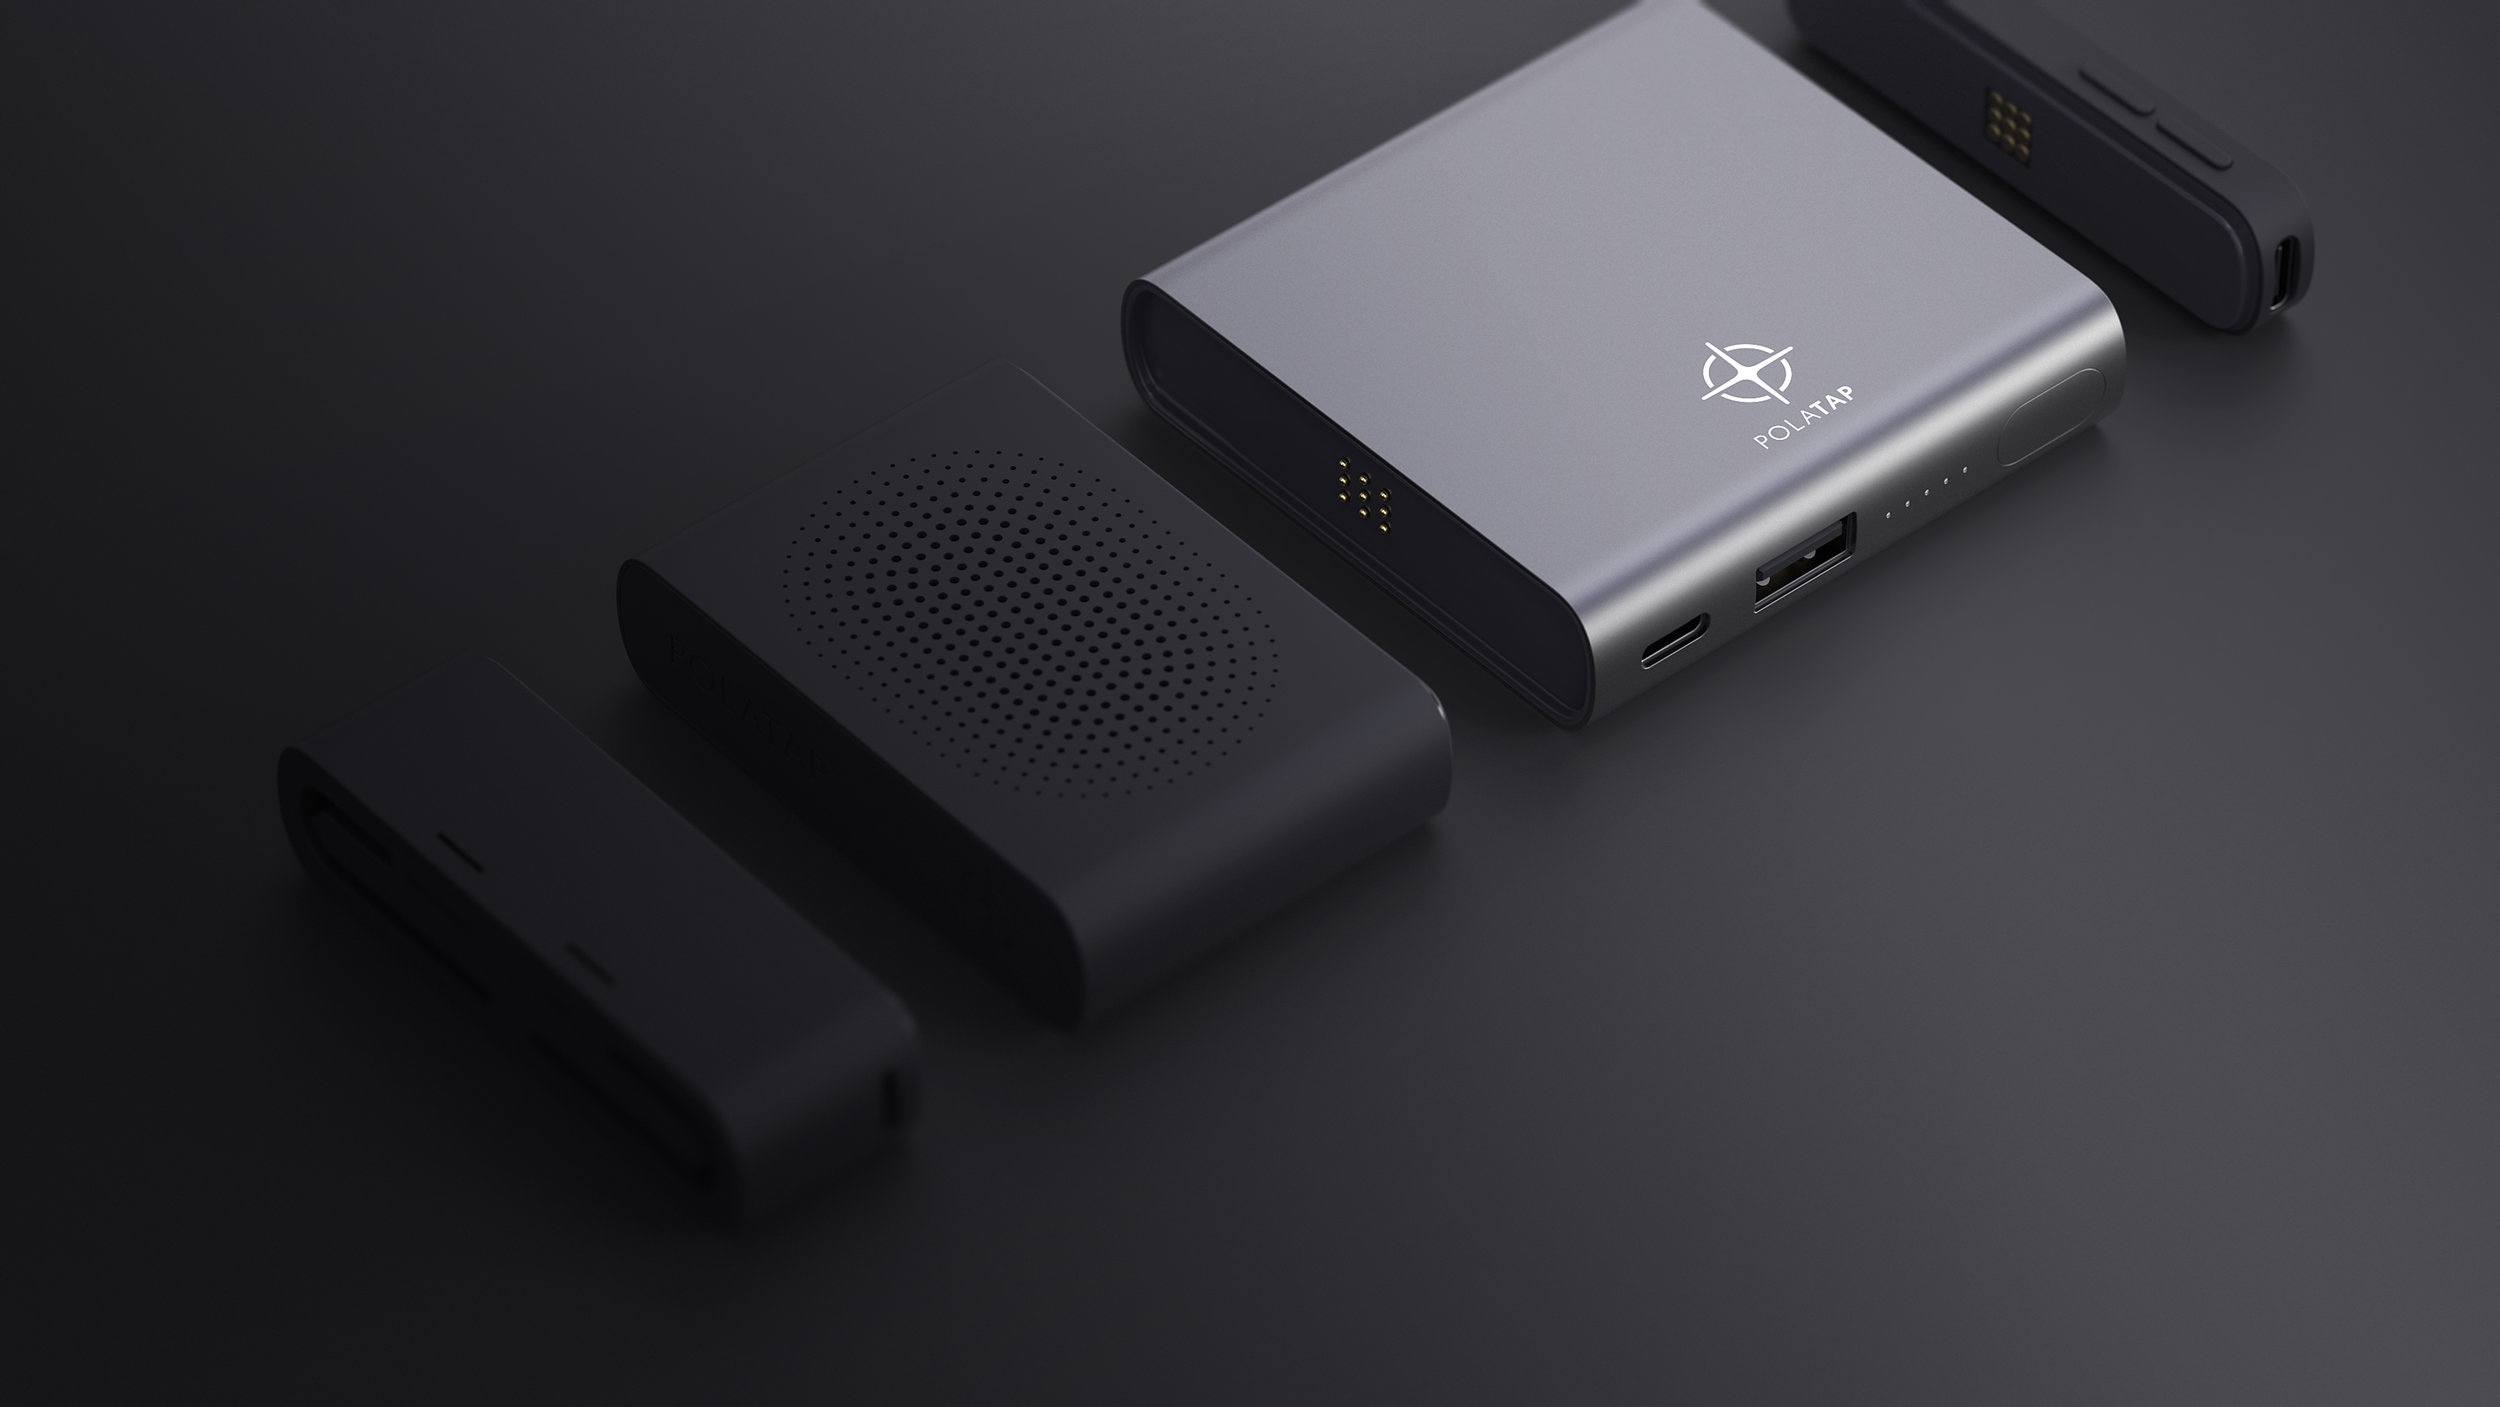 Charge HUB has two magnetic charging slots that could charge two modules simultaneously.